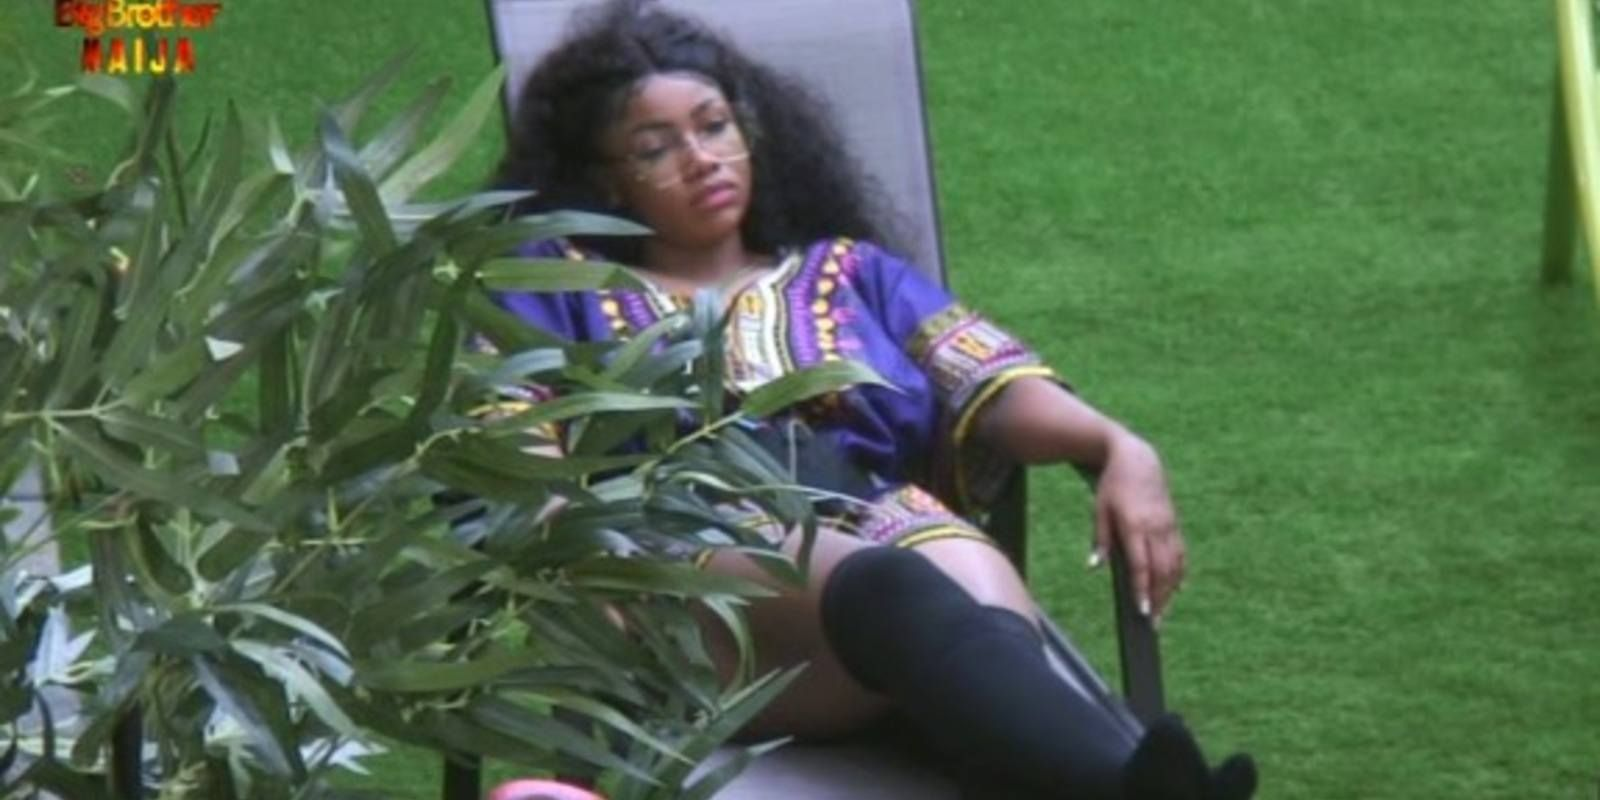 Early Morning Workout, Balls Up High & Plenty Tears – Check Out Highlights of #BBNaija Day 2